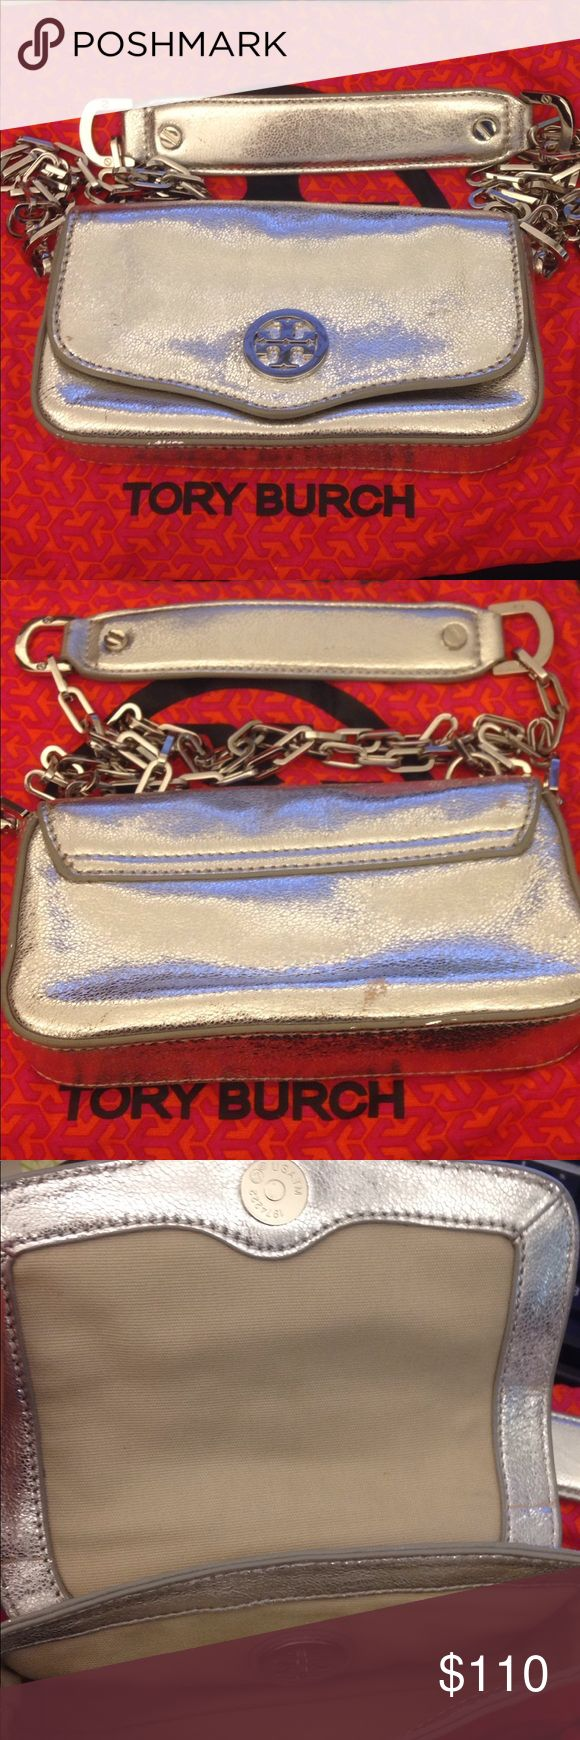 Tory Burch Silver shoulder bag Pre owned Tory Burch Silver shoulder bar or cross body. Good used condition. Showed some wear showing little scratches . Pls check photos Tory Burch Bags Crossbody Bags